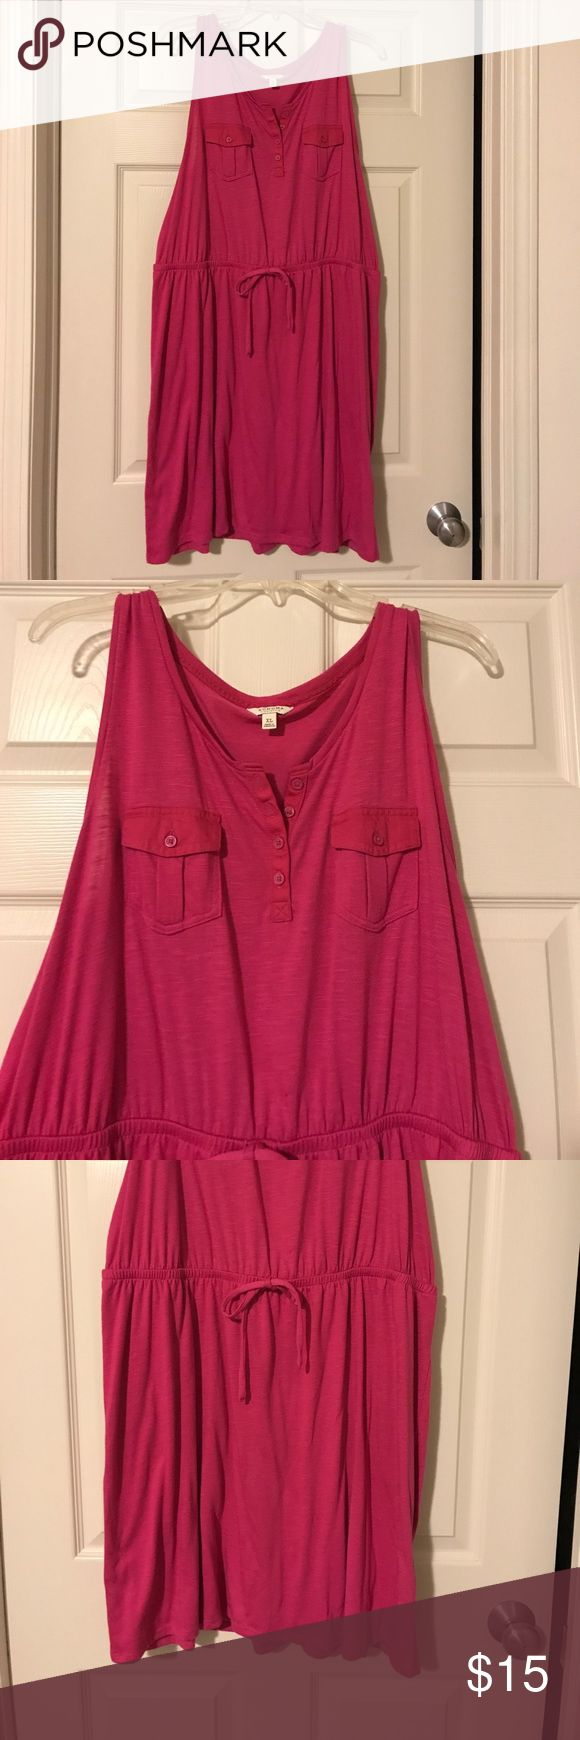 Sleeveless Jumper Dress In excellent condition. Sleeveless top attached to lined skirt. Top has buttons down front and 2 chest pockets waist is stretchy. Comes to knee length. Dresses Midi